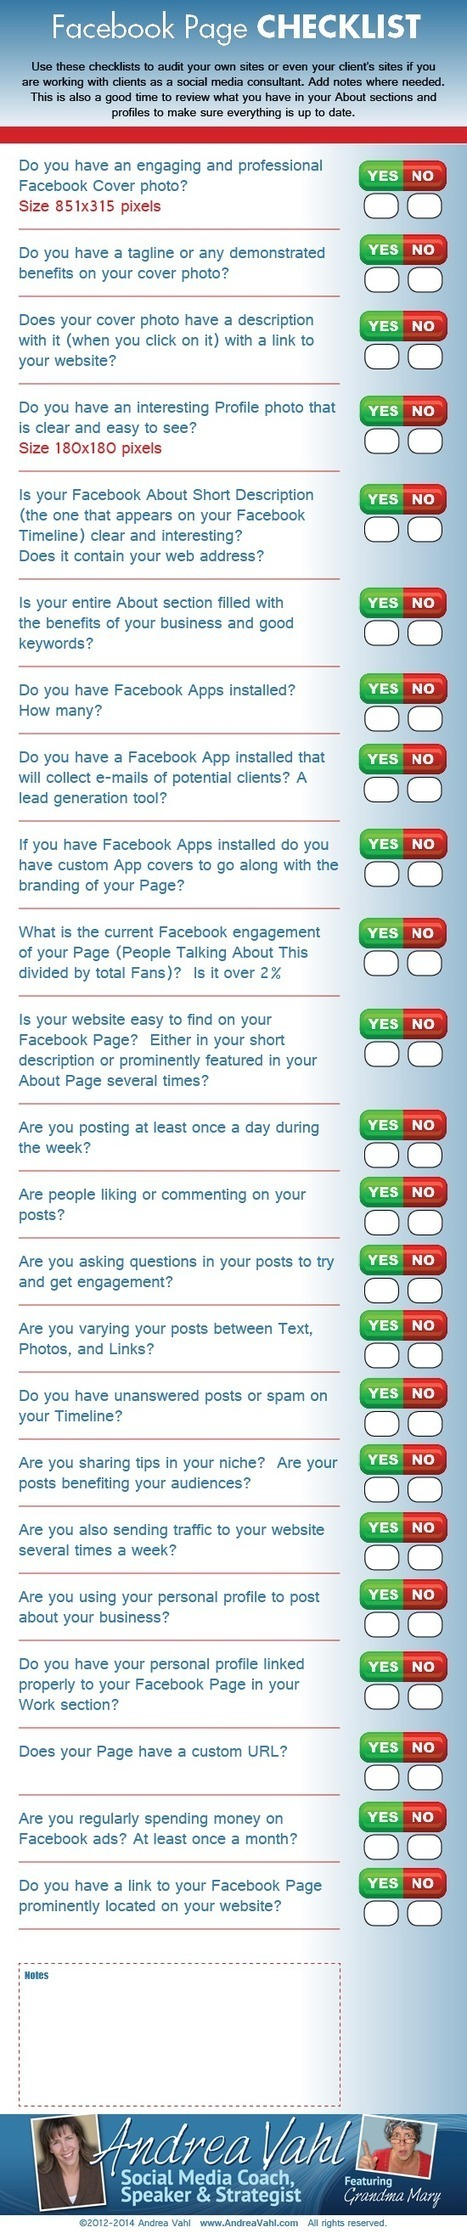 Facebook Page Checklist [Infographic] | Content Marketing | Scoop.it